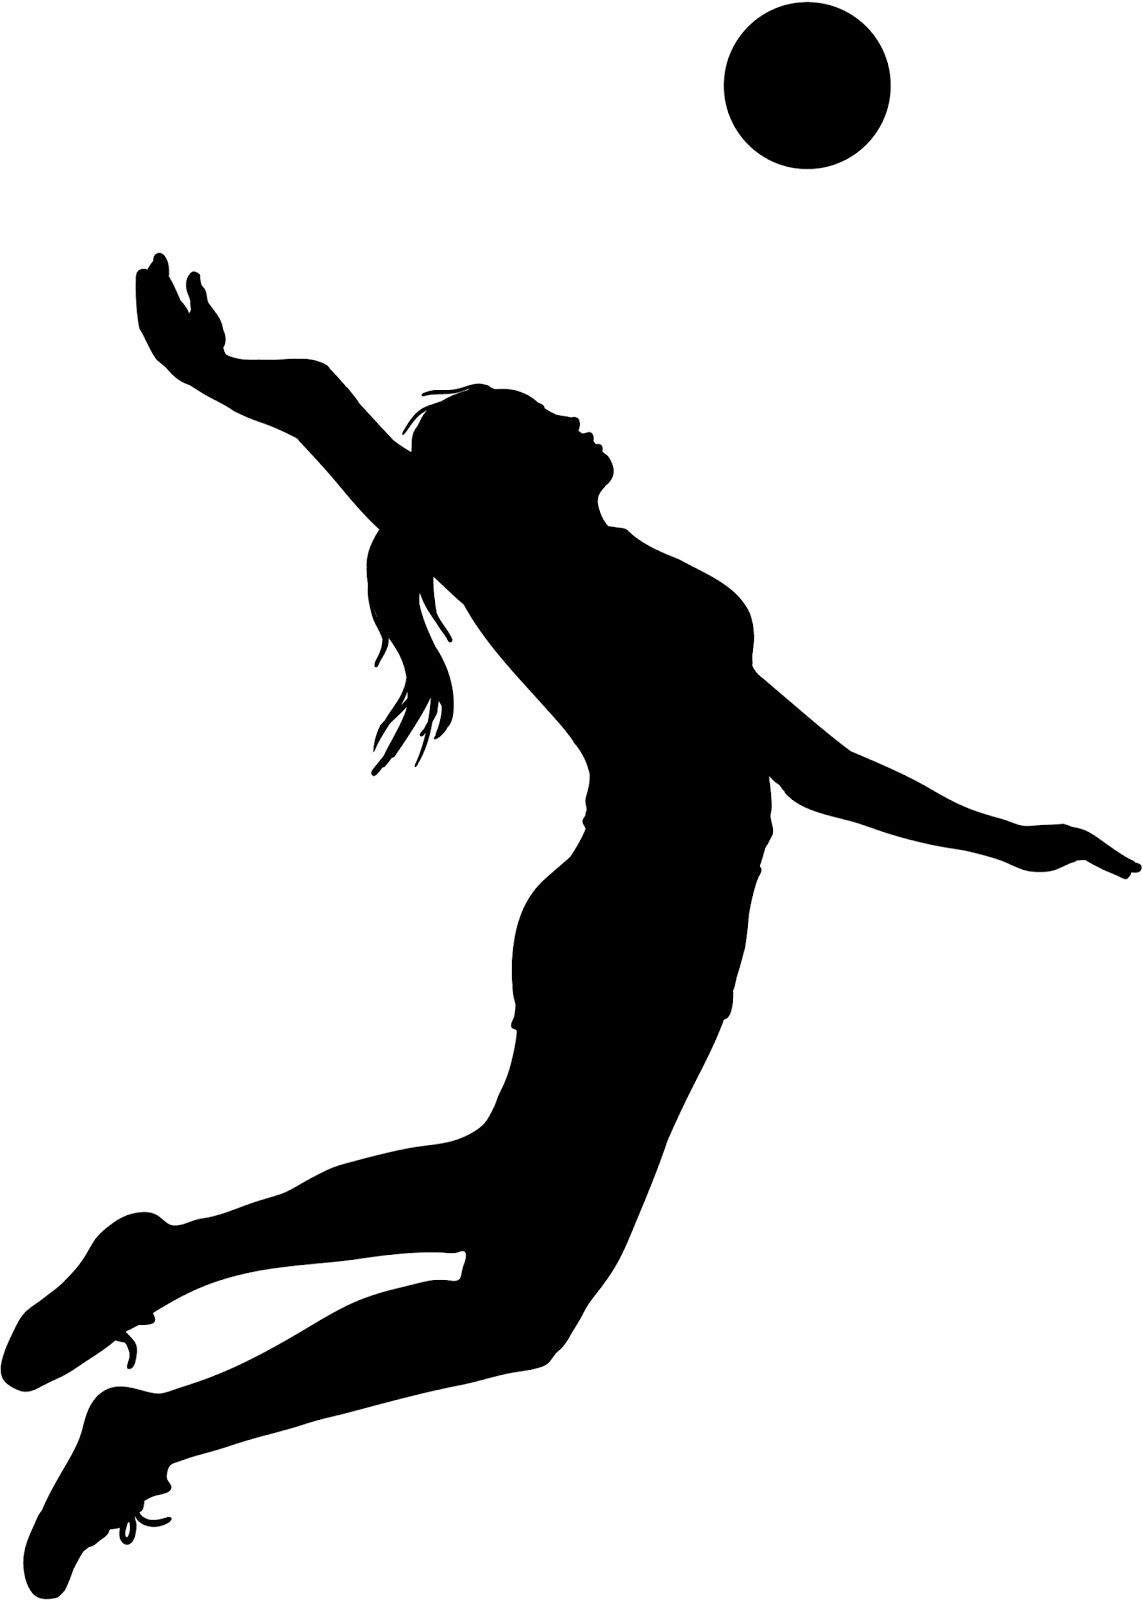 Related Image Volleyball Drawing Olympic Volleyball Volleyball Silhouette